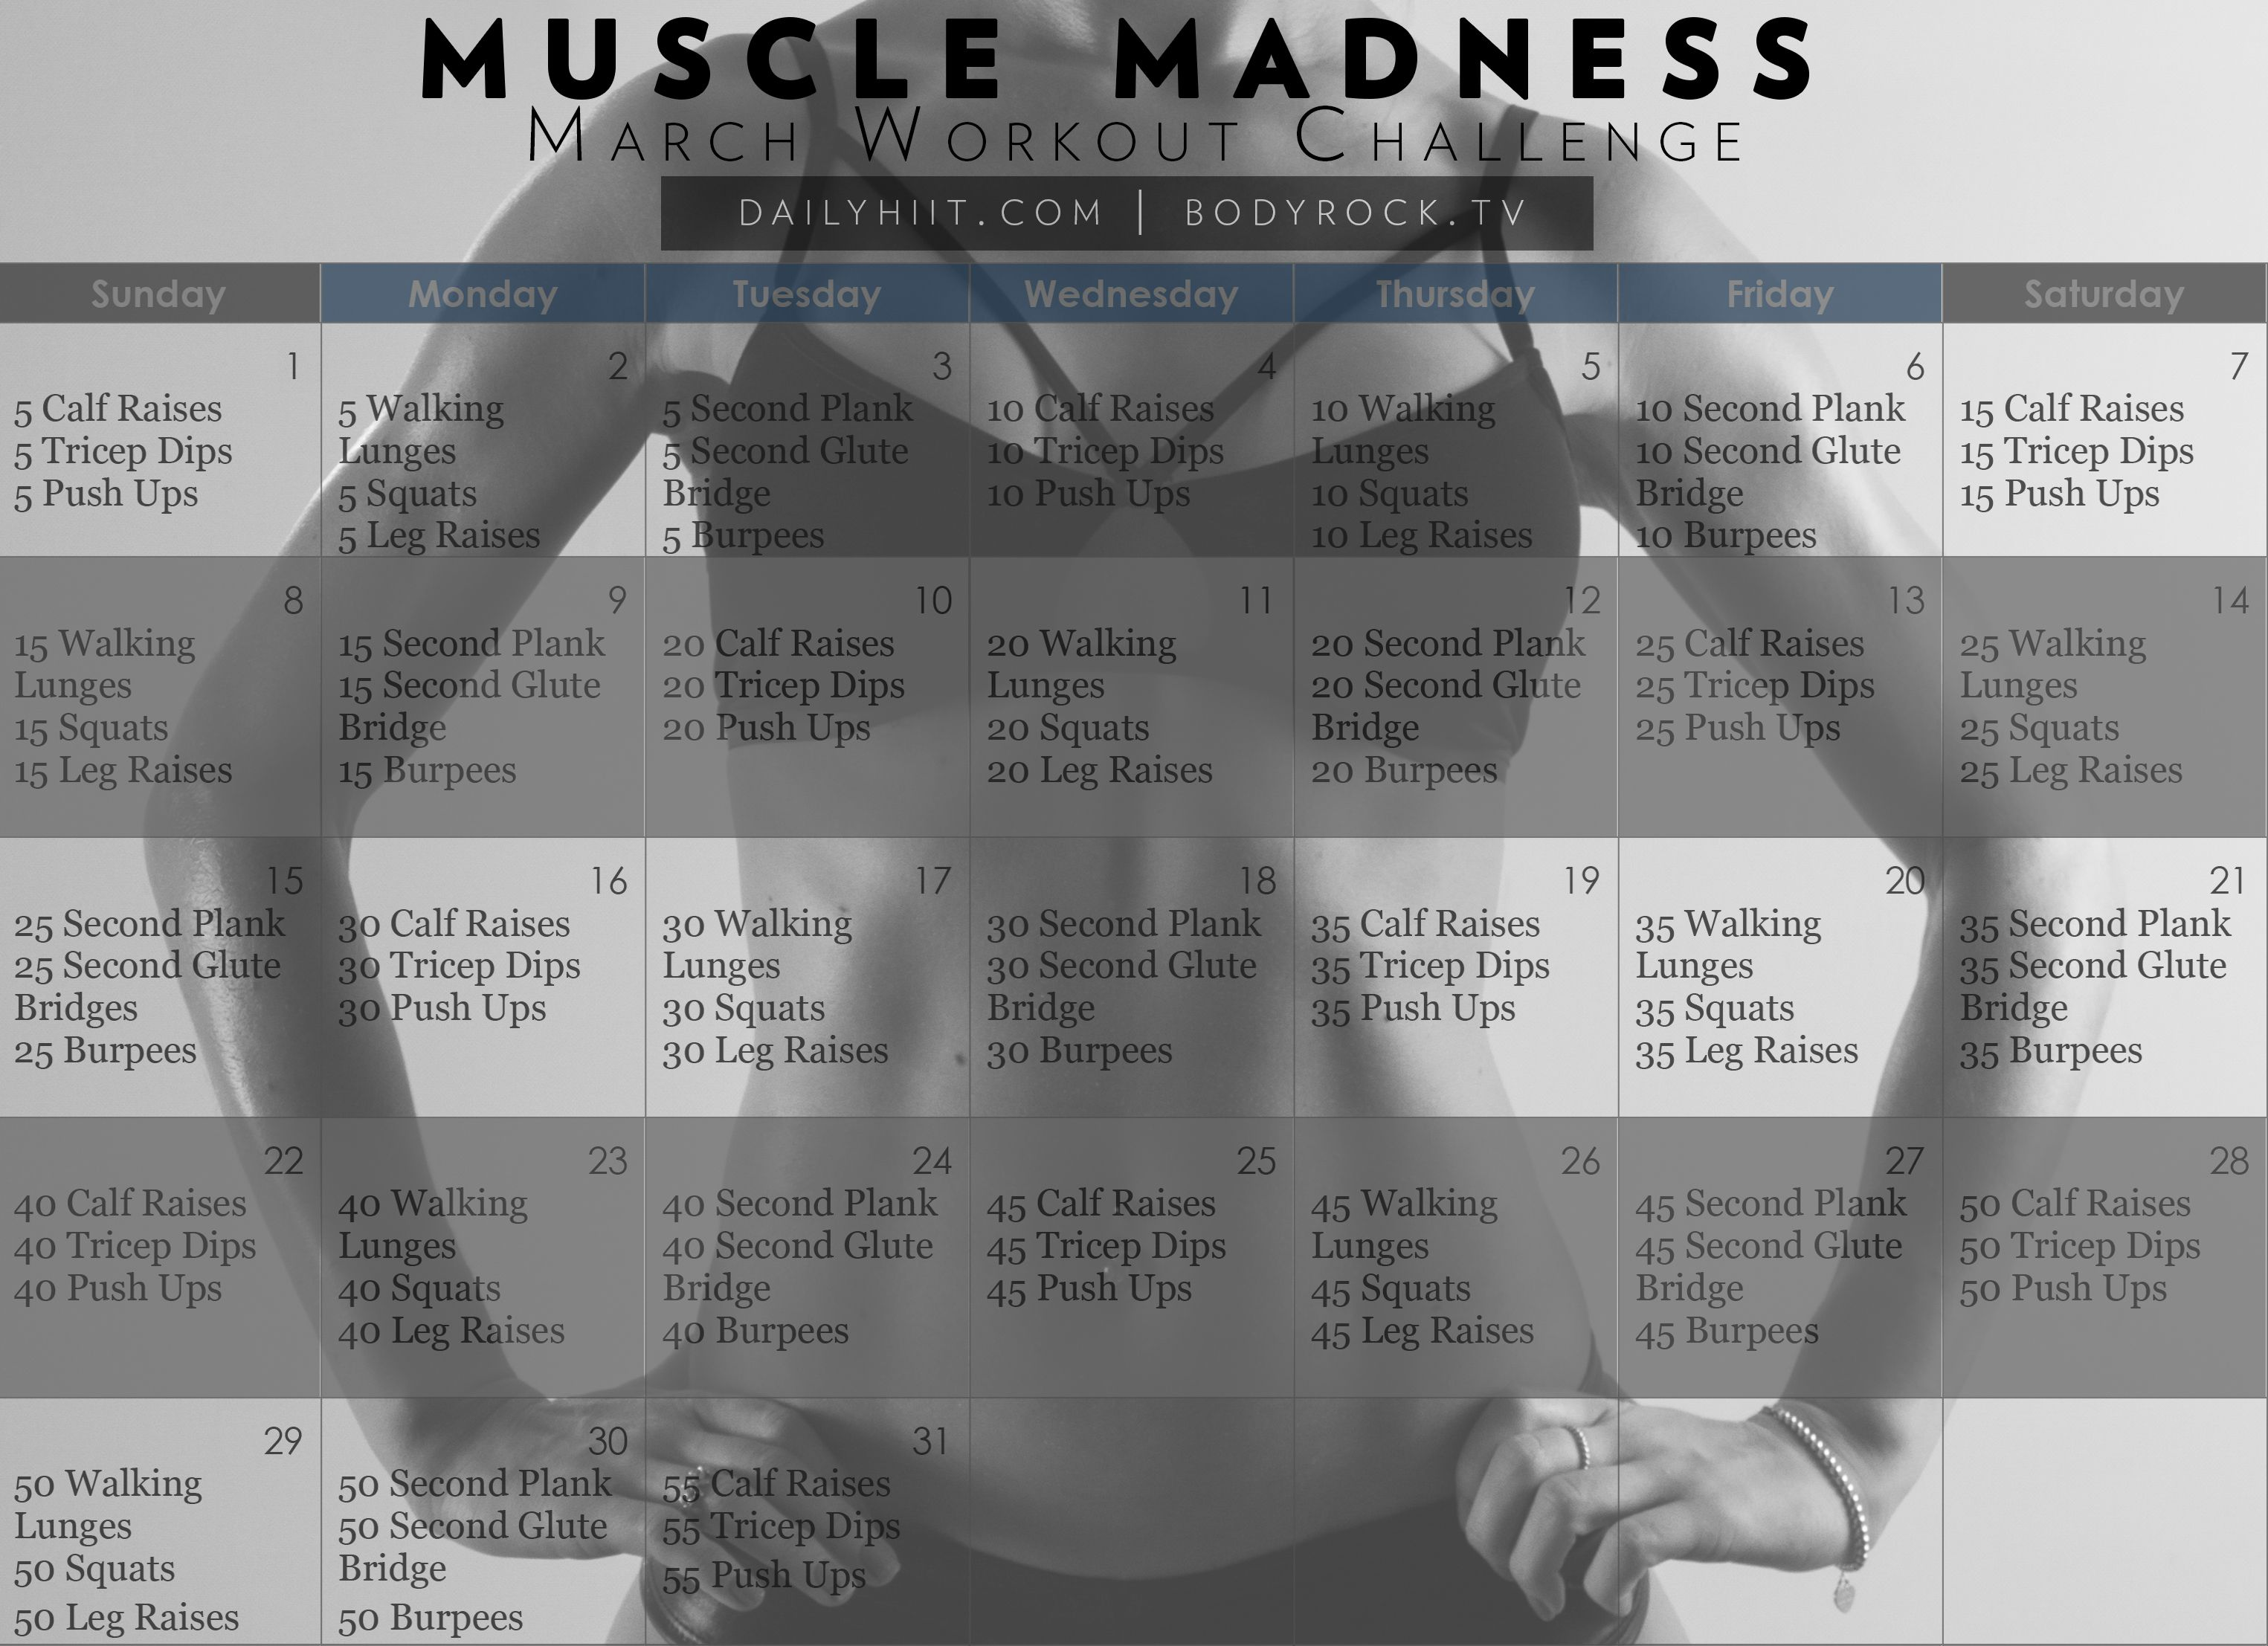 Muscle Madness March Workout Challenge Free Calendar Hiit Blog March Fitness Challenge Workout Challenge March Workout